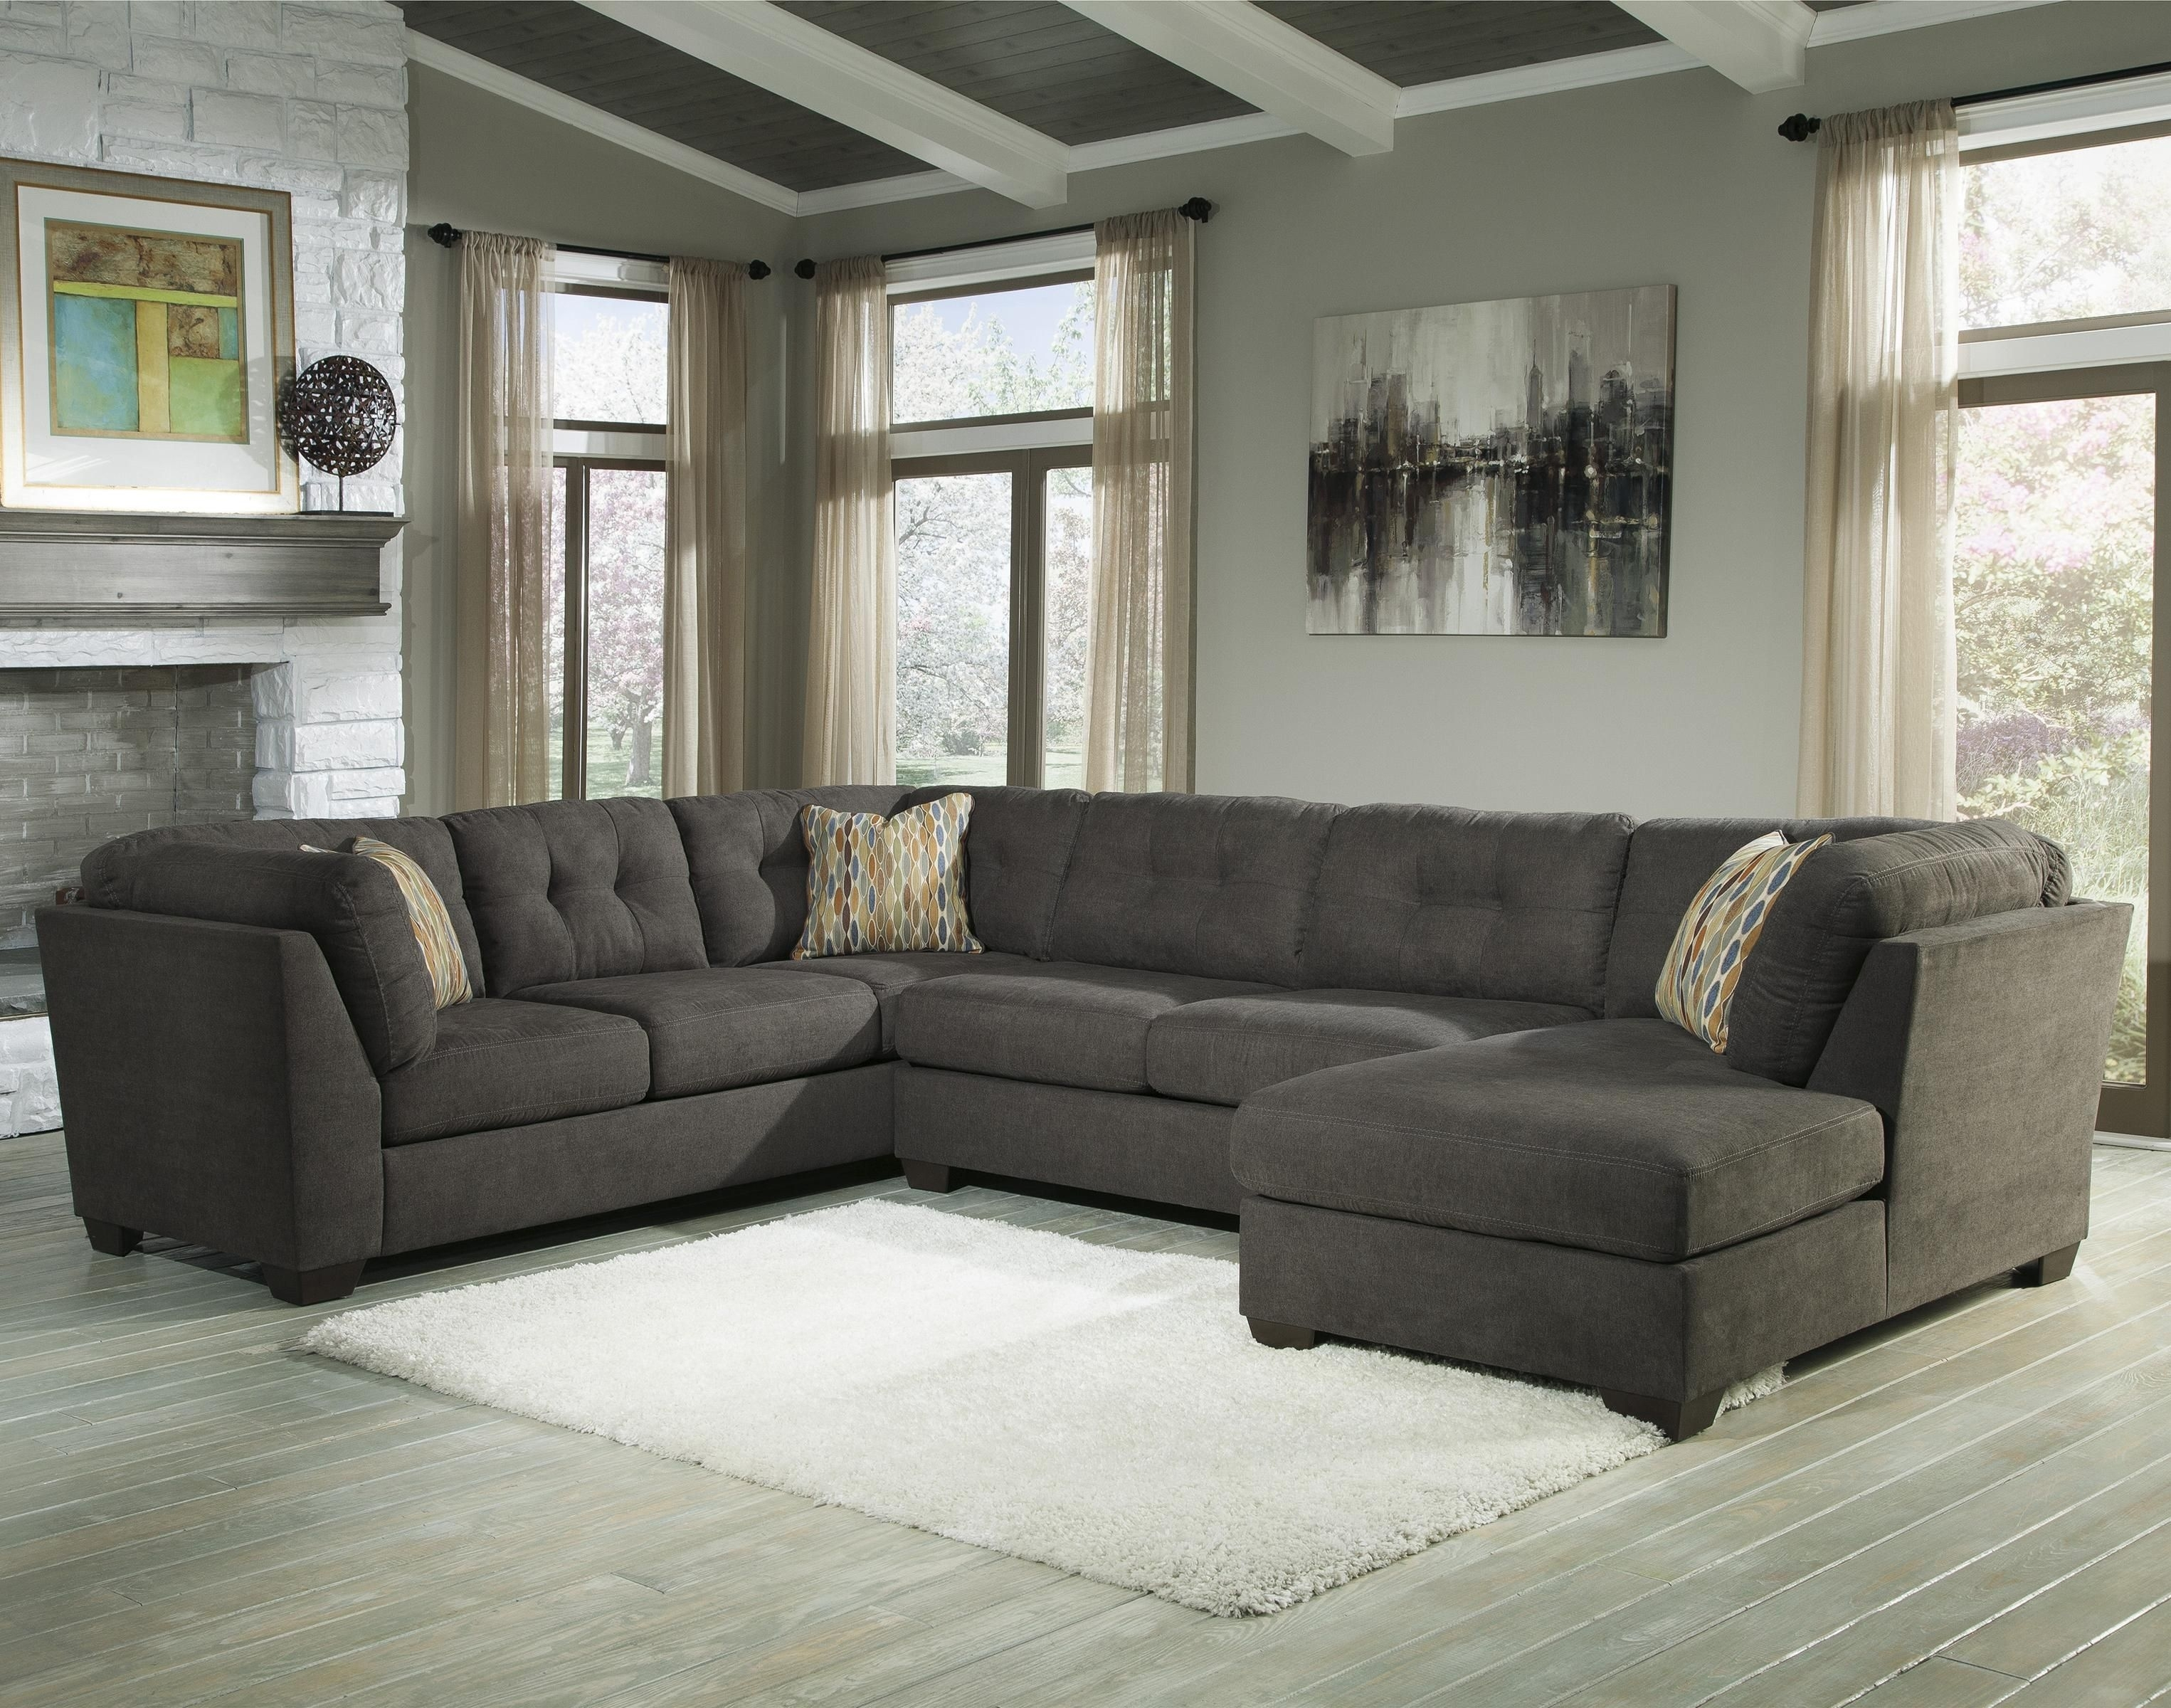 Delta City – Steel 3 Piece Modular Sectional With Right Chaise Regarding Haven Blue Steel 3 Piece Sectionals (View 13 of 25)